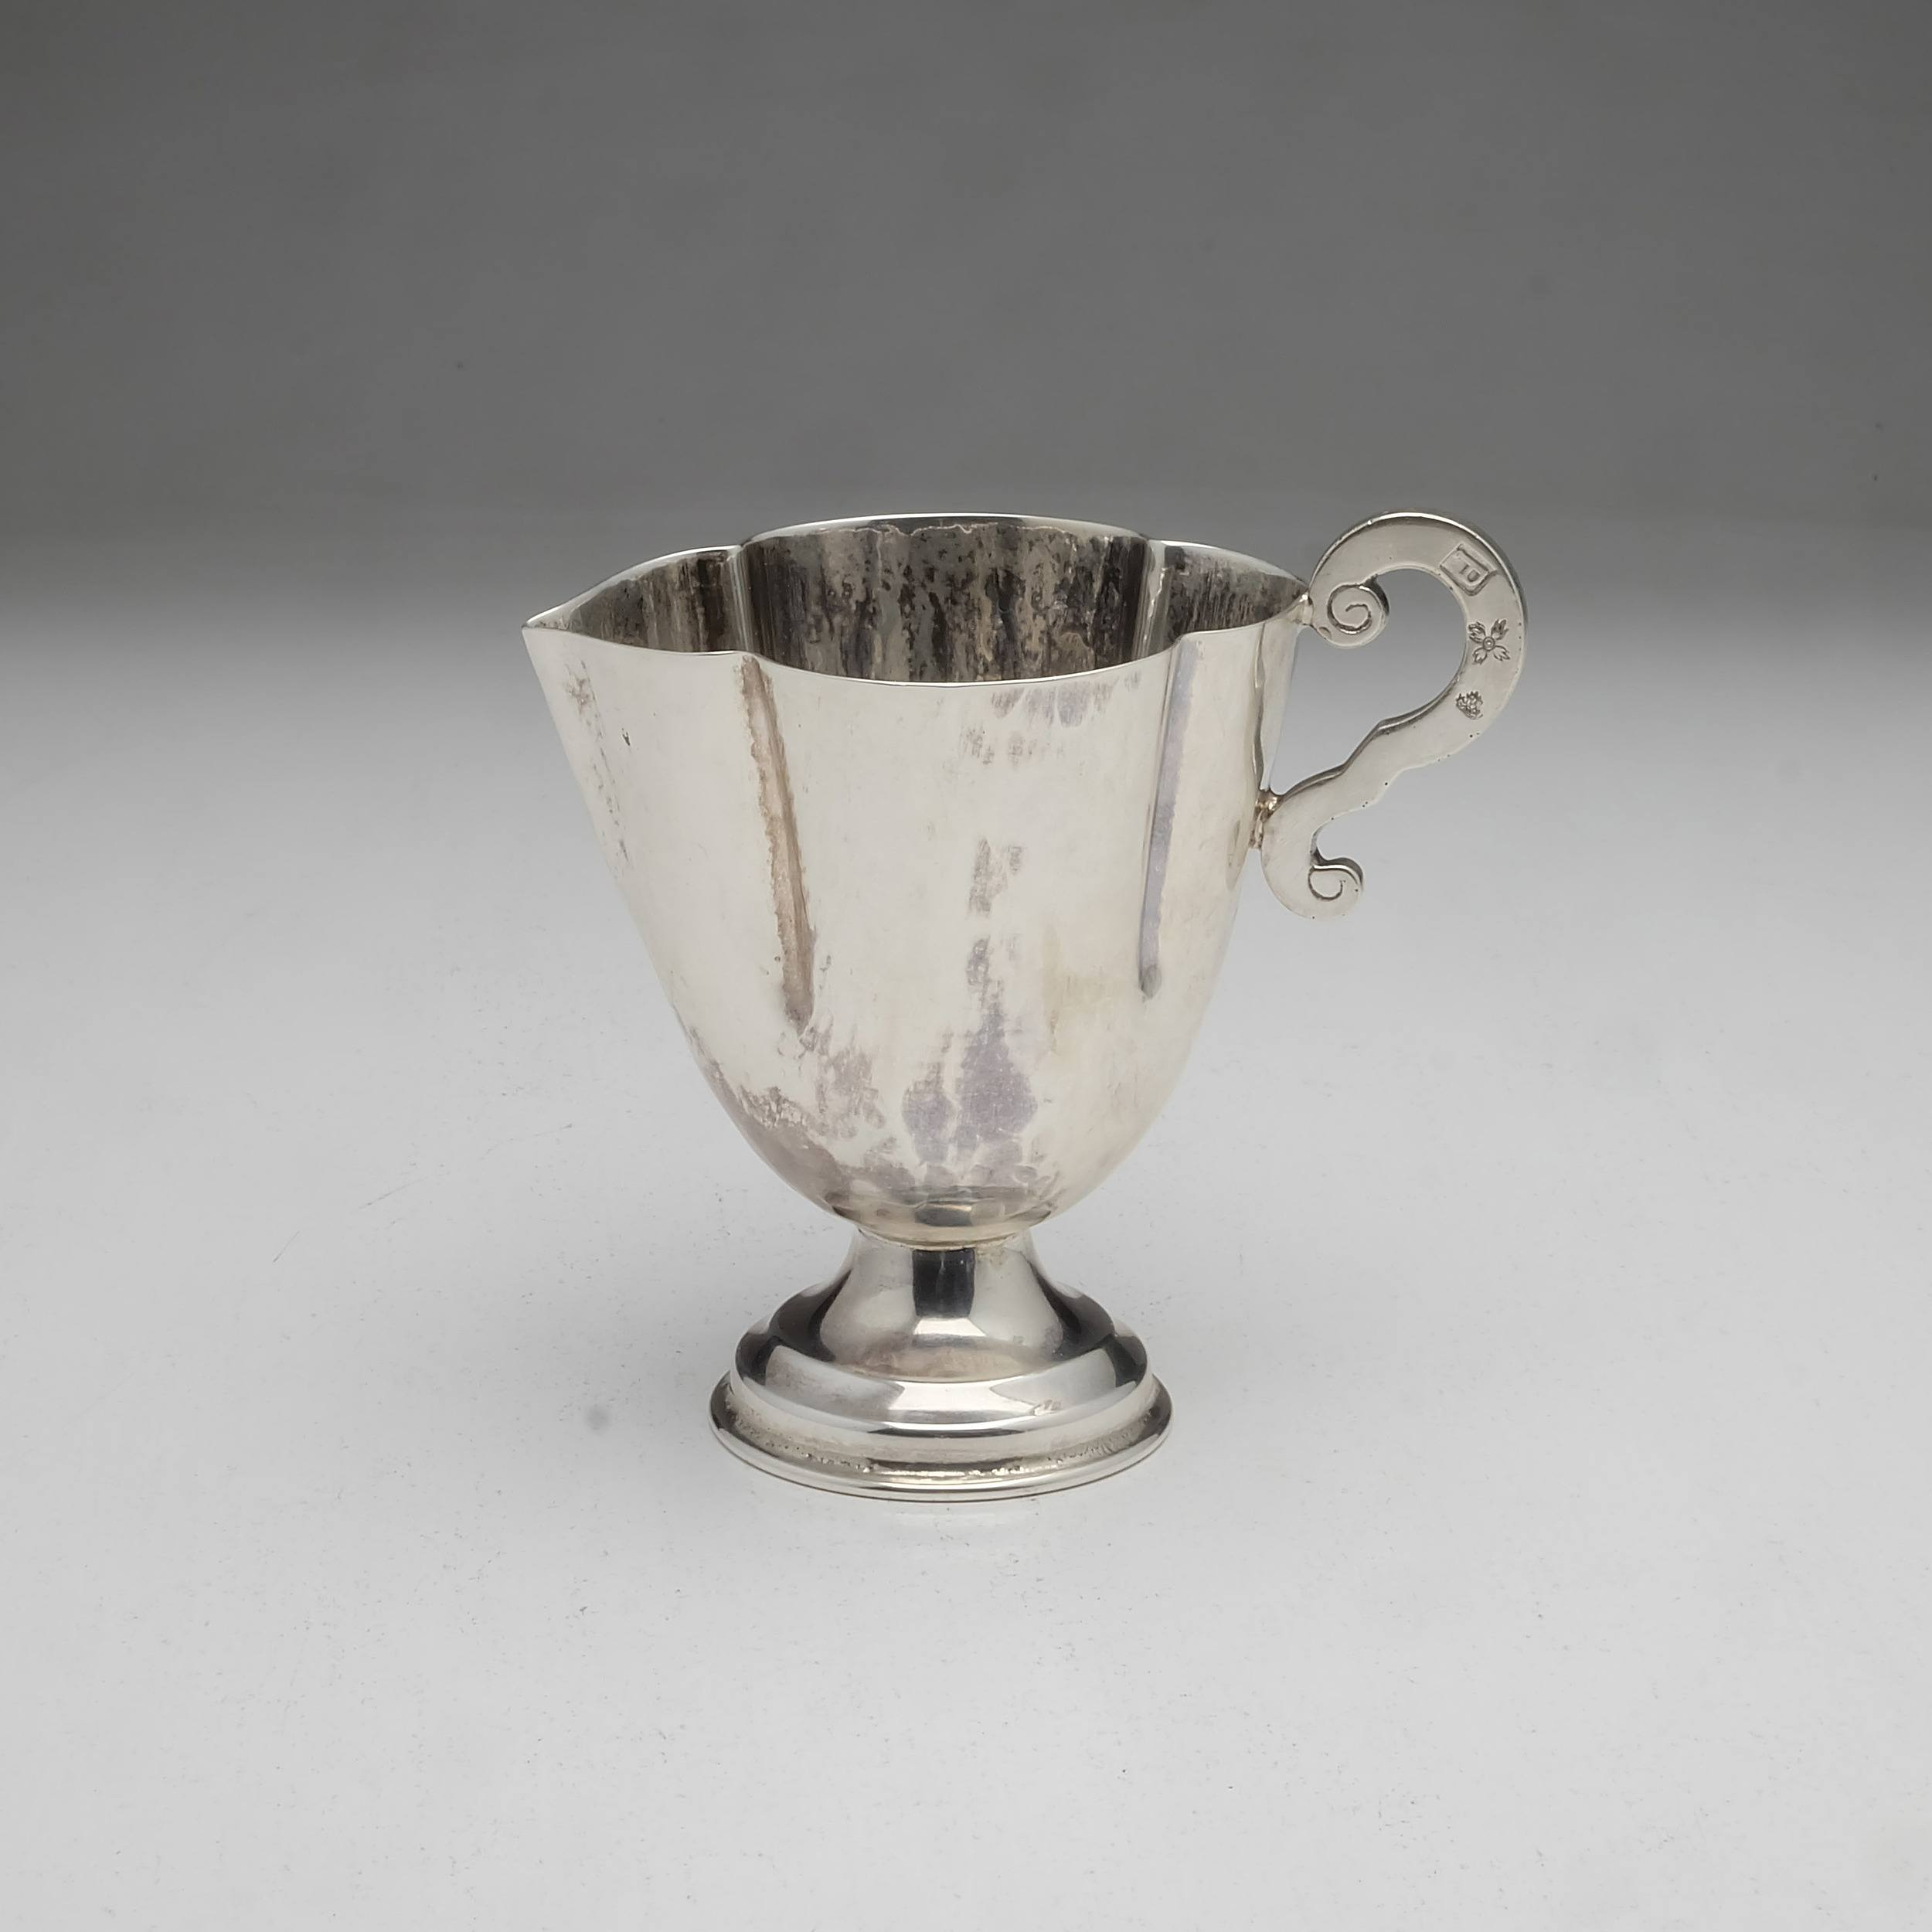 'Spanish Silver Jug in the Colonial Style 125g'